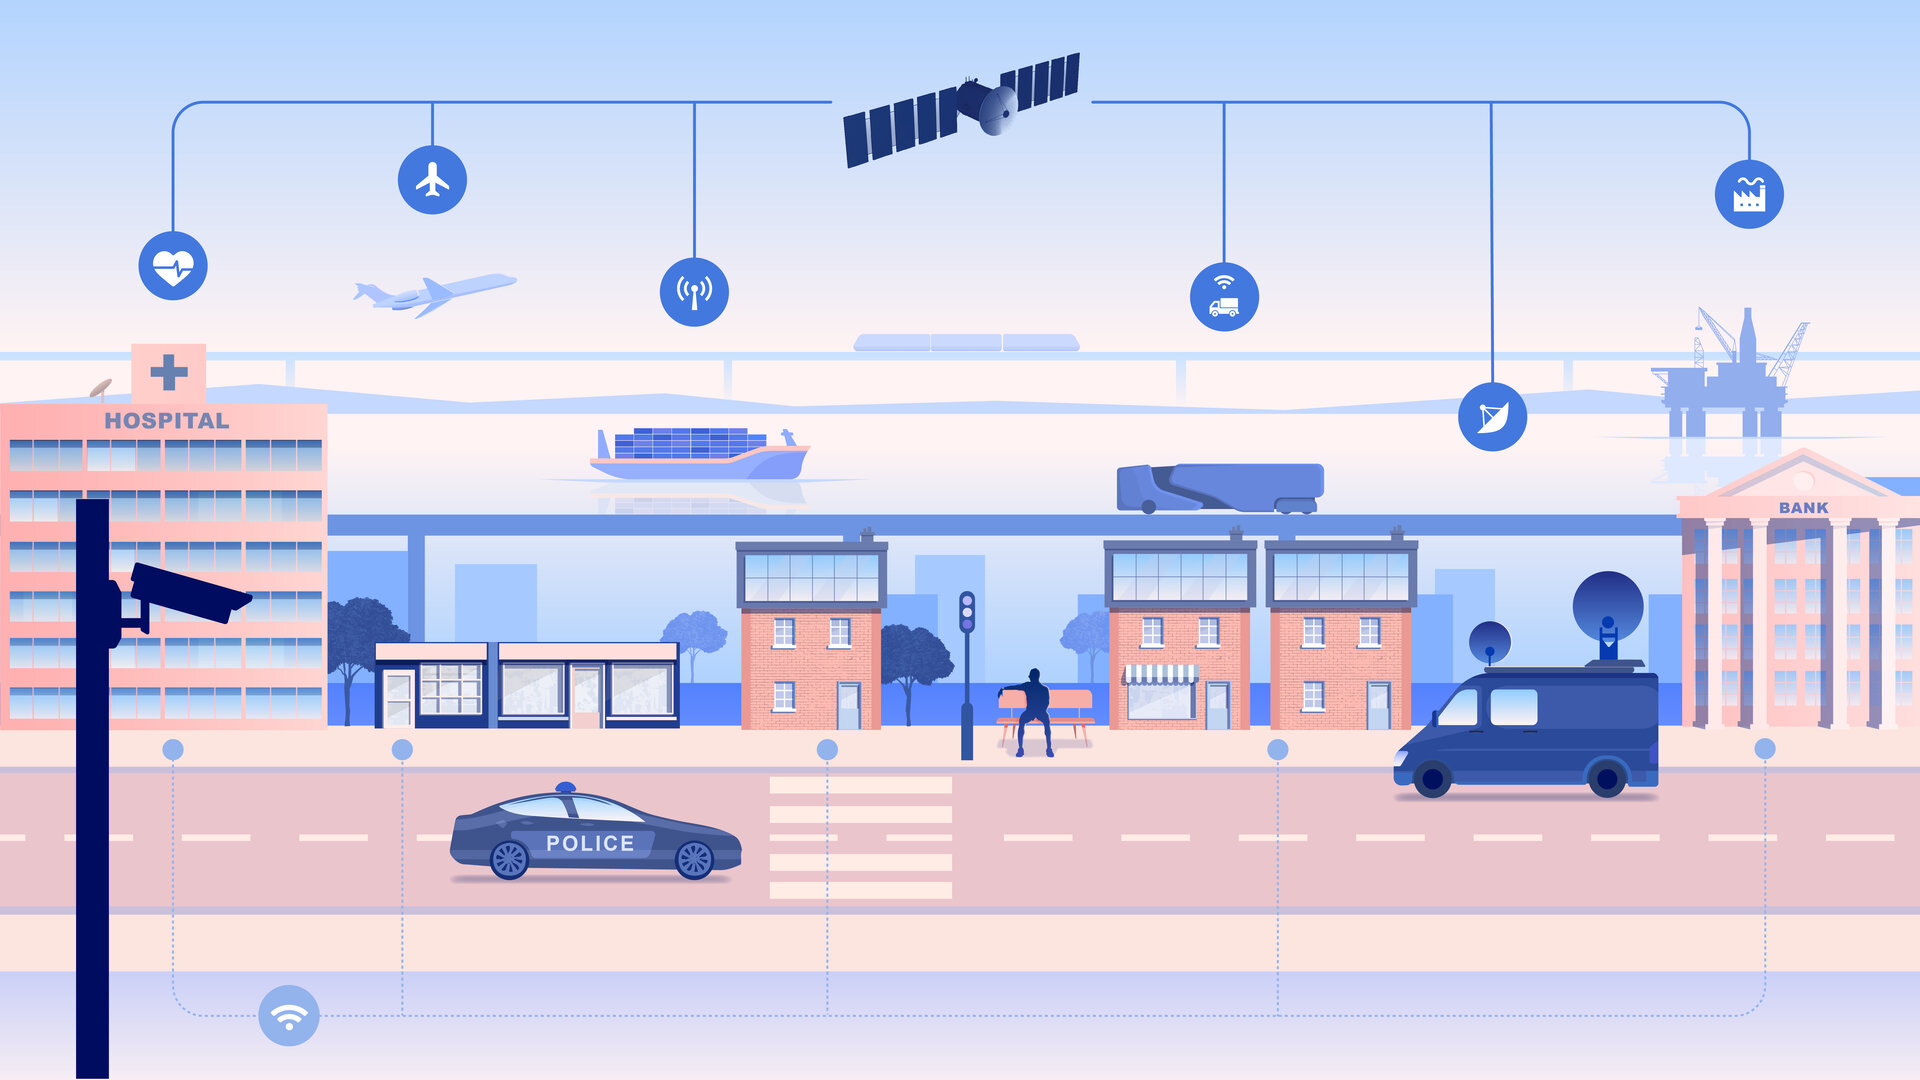 Infrastructure and smart cities